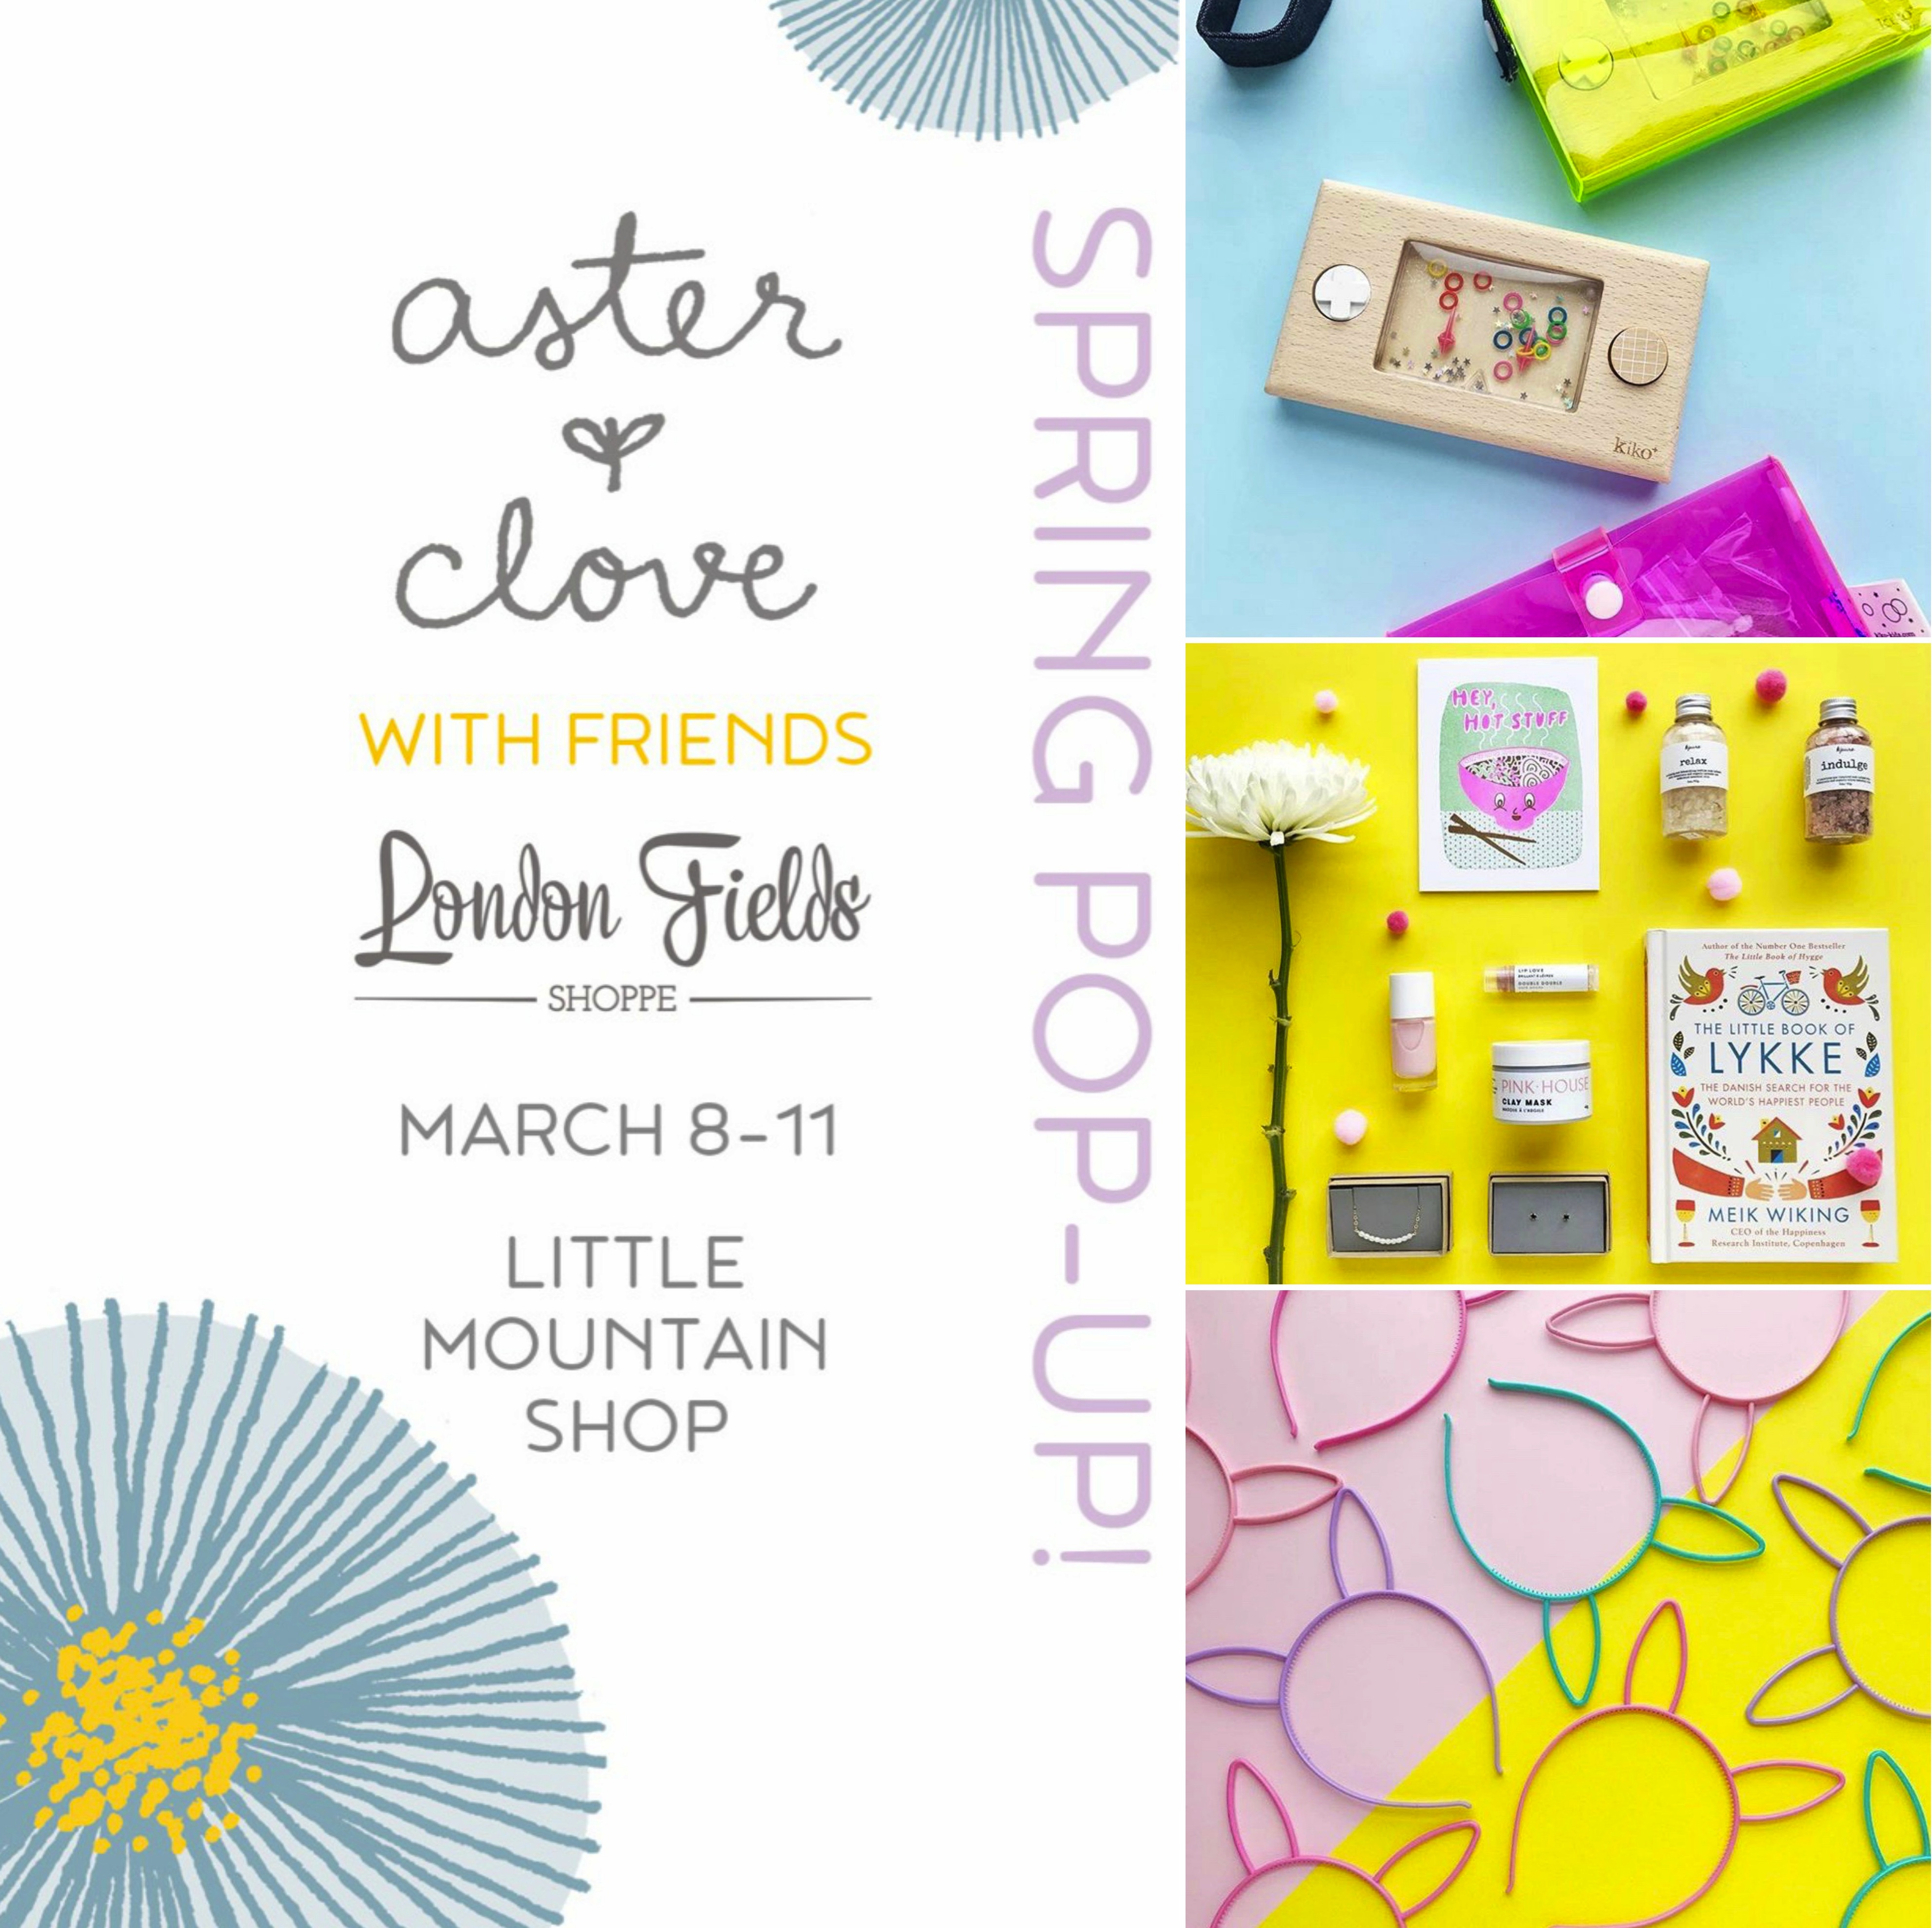 AsterClove_Spring_PopUp